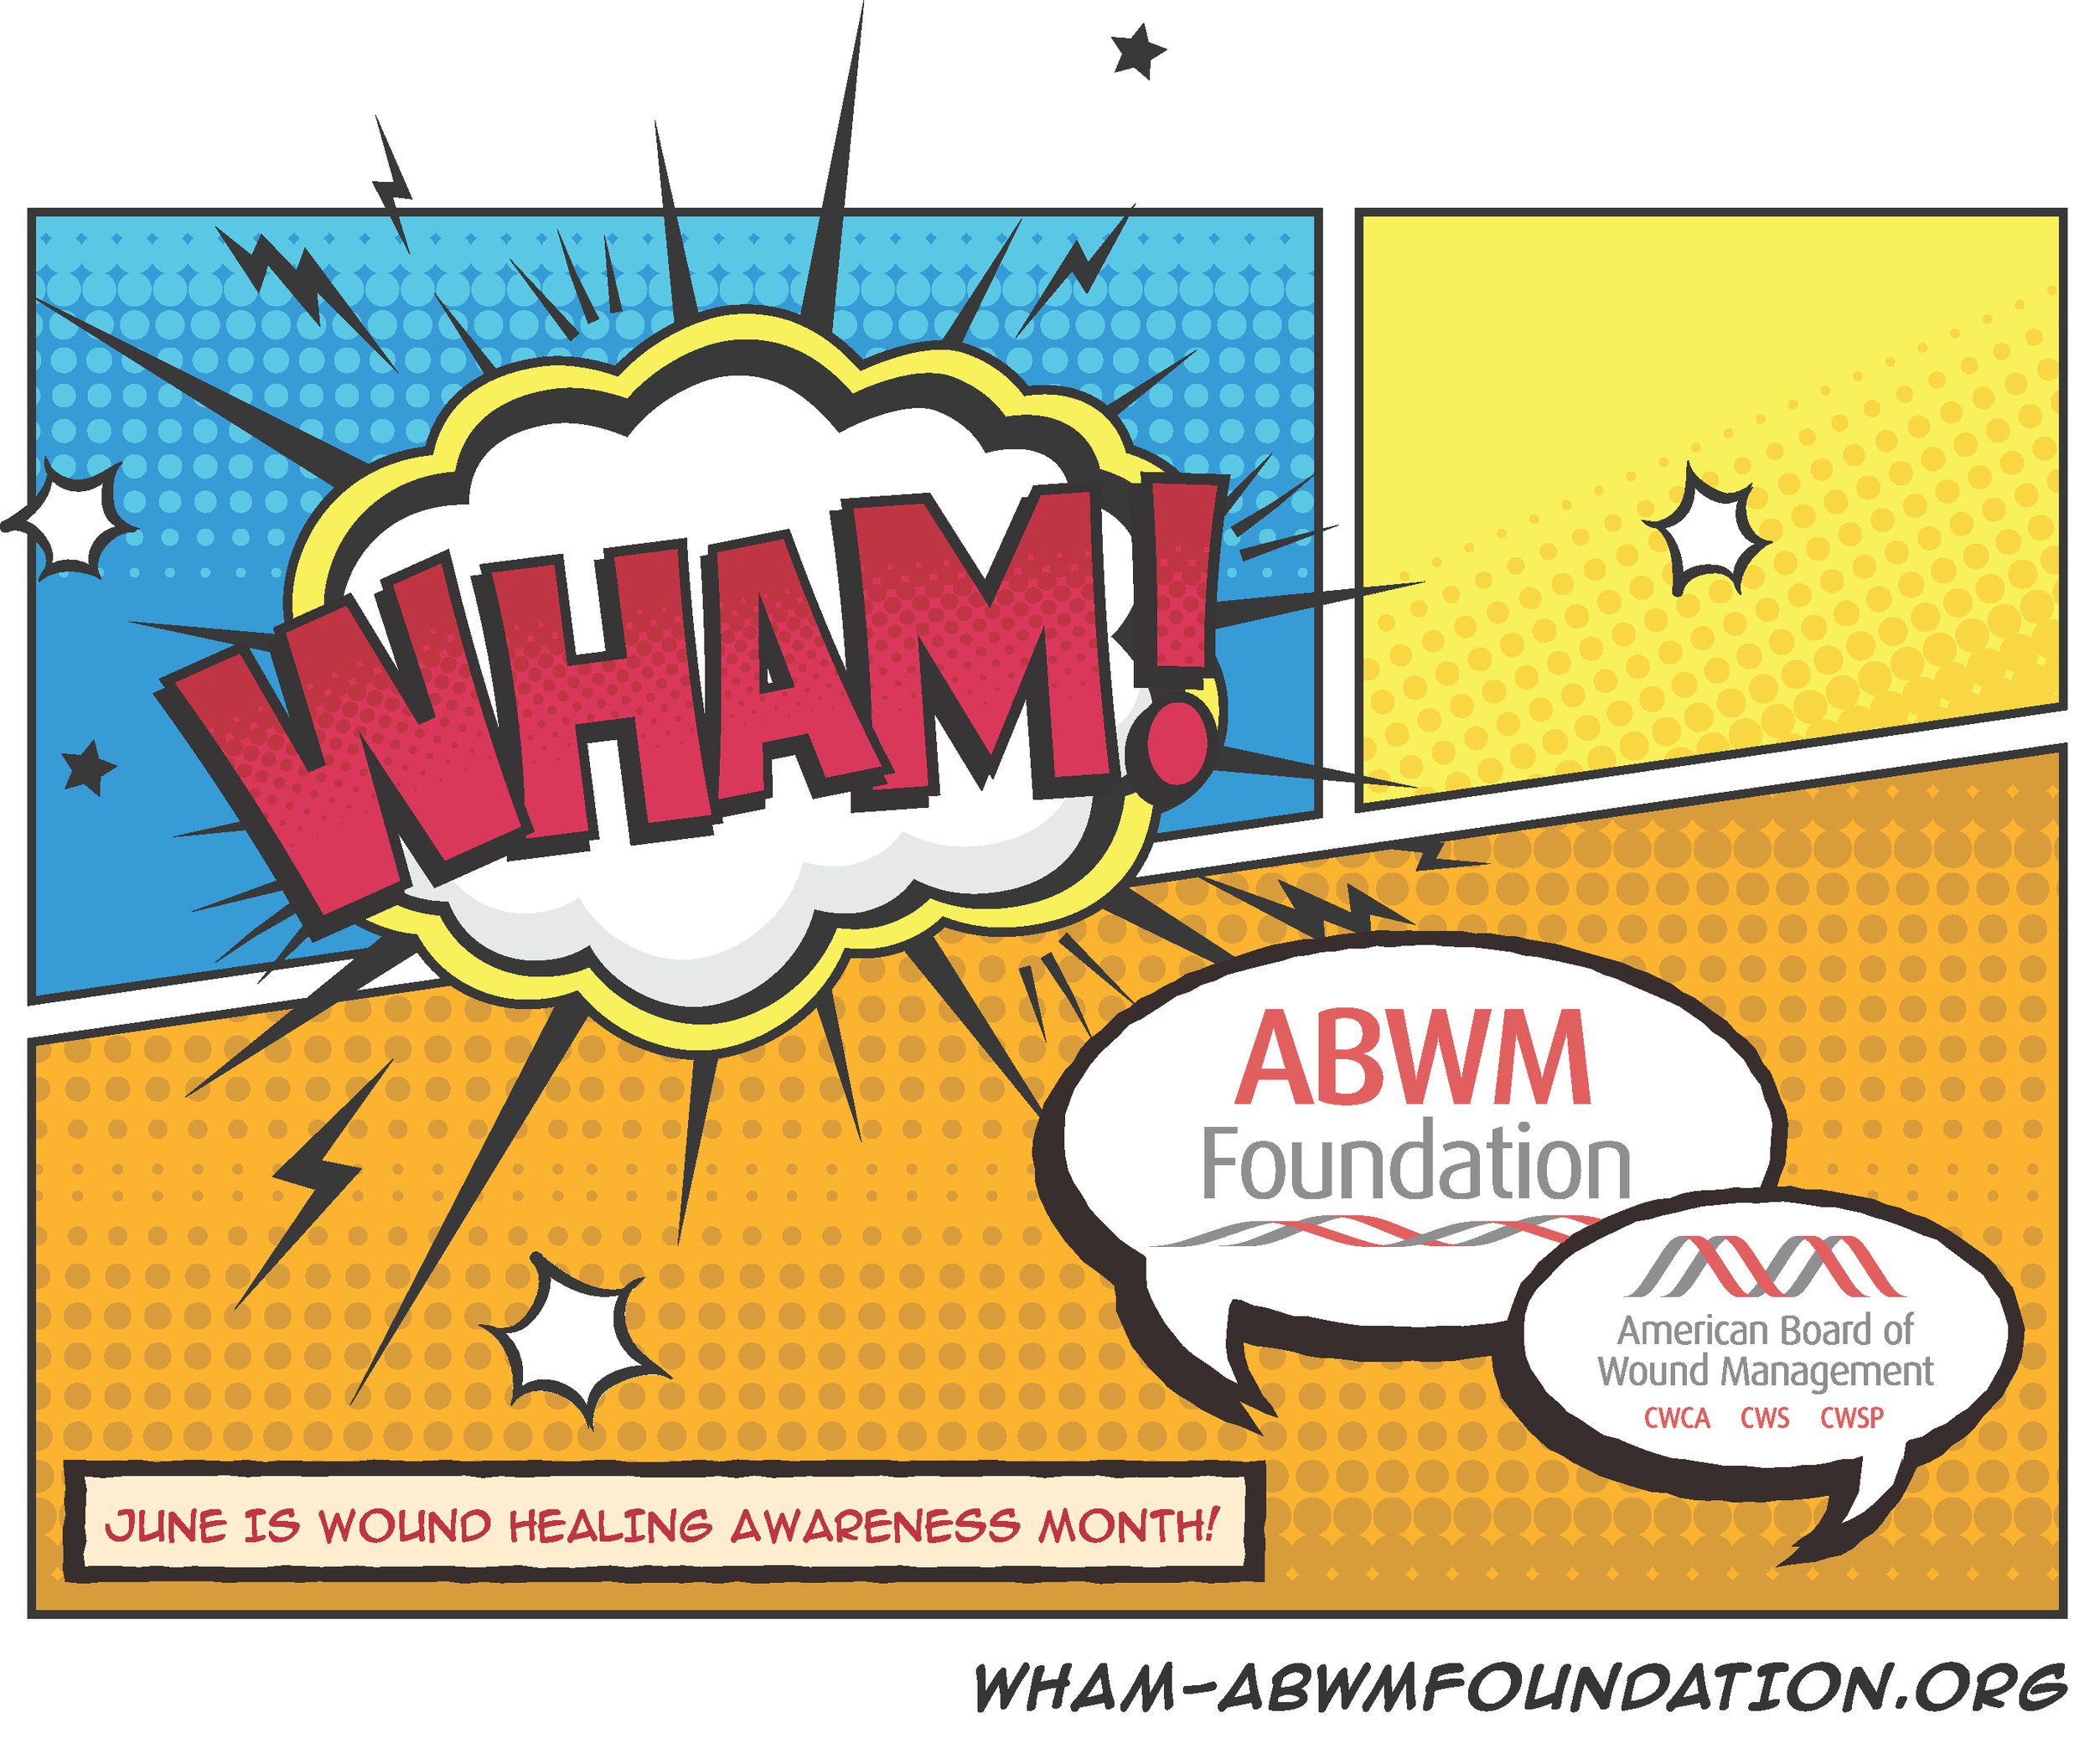 Download the full color WHAM! Logo